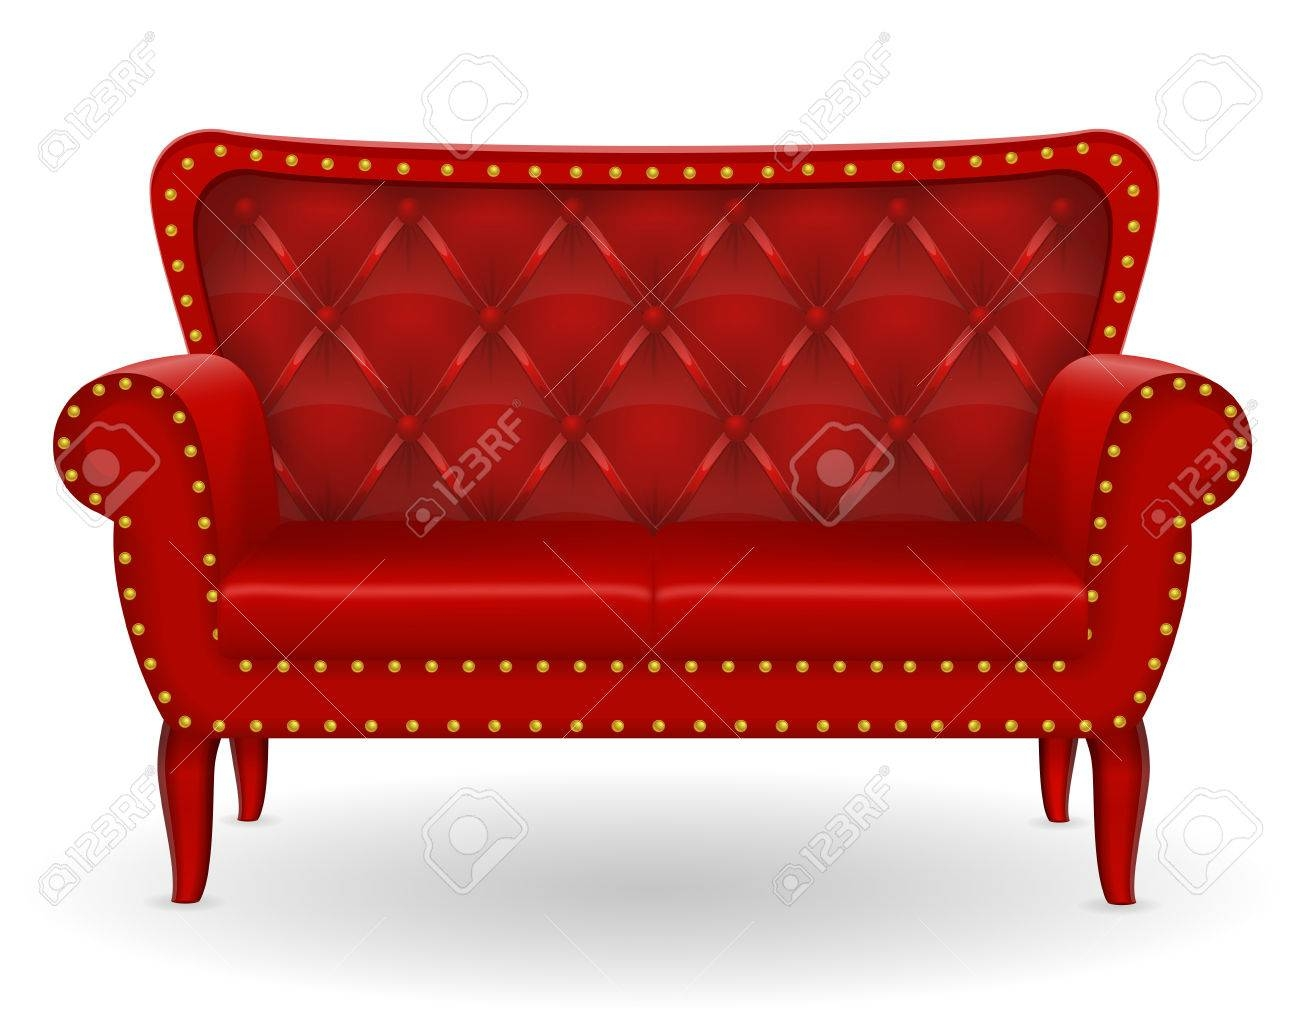 Red Sofa Furniture Vector Illustration Isolated On White inside Red Sofa Chairs (Image 20 of 30)